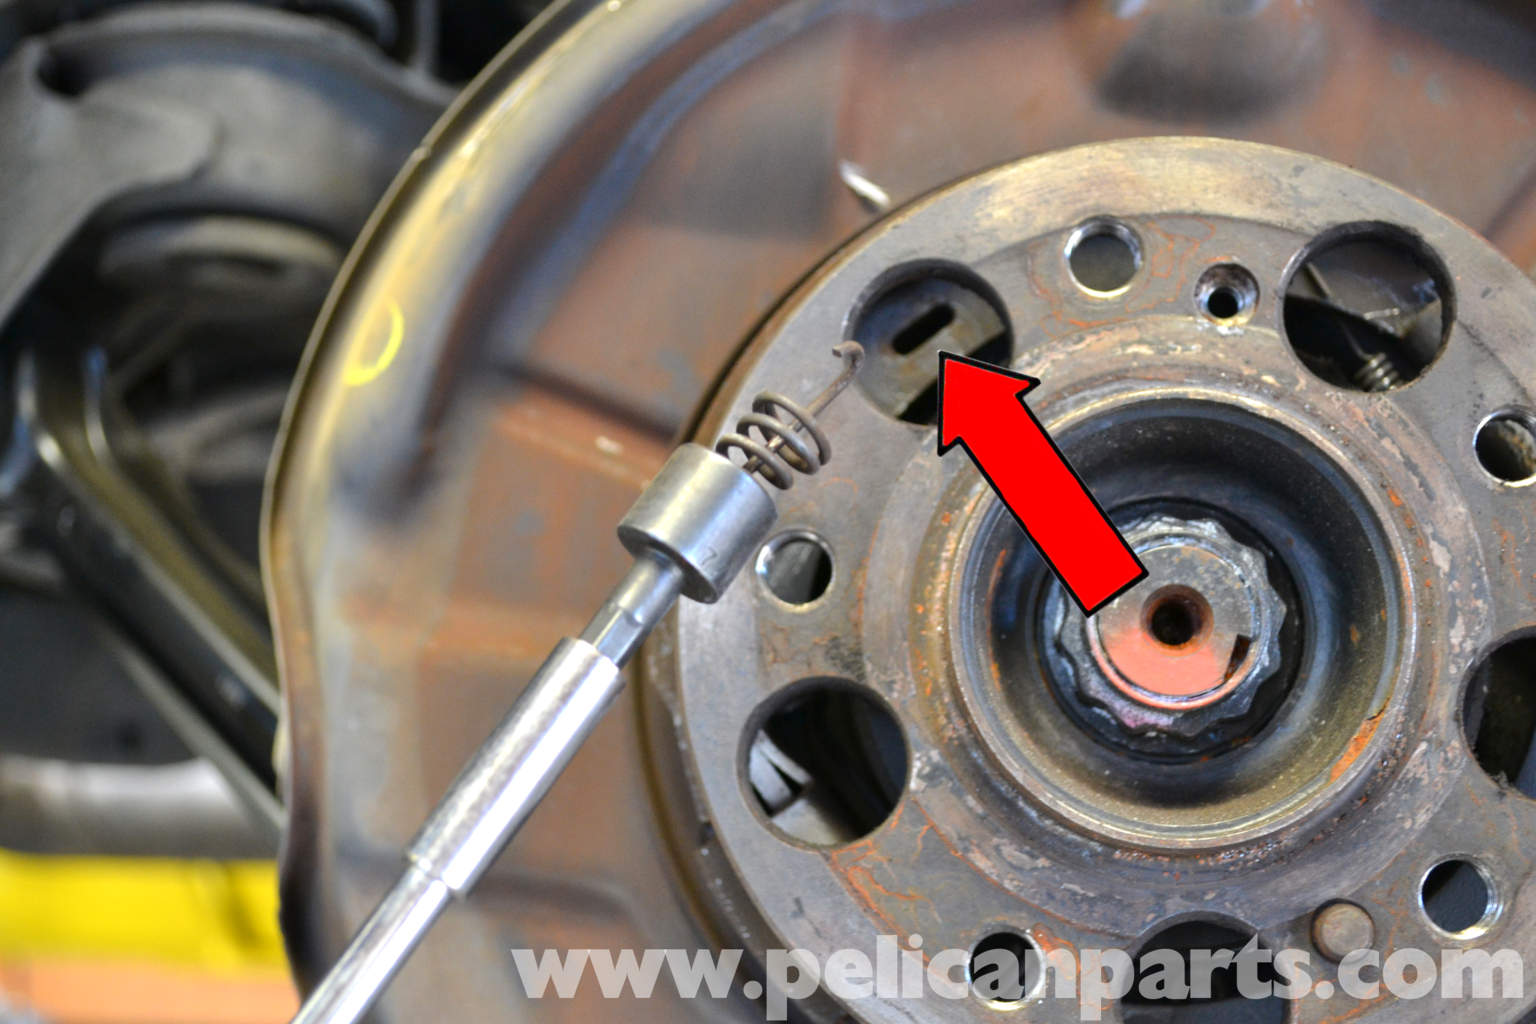 Mercedes benz 190e parking brake pad replacement w201 for Mercedes benz rotors and pads